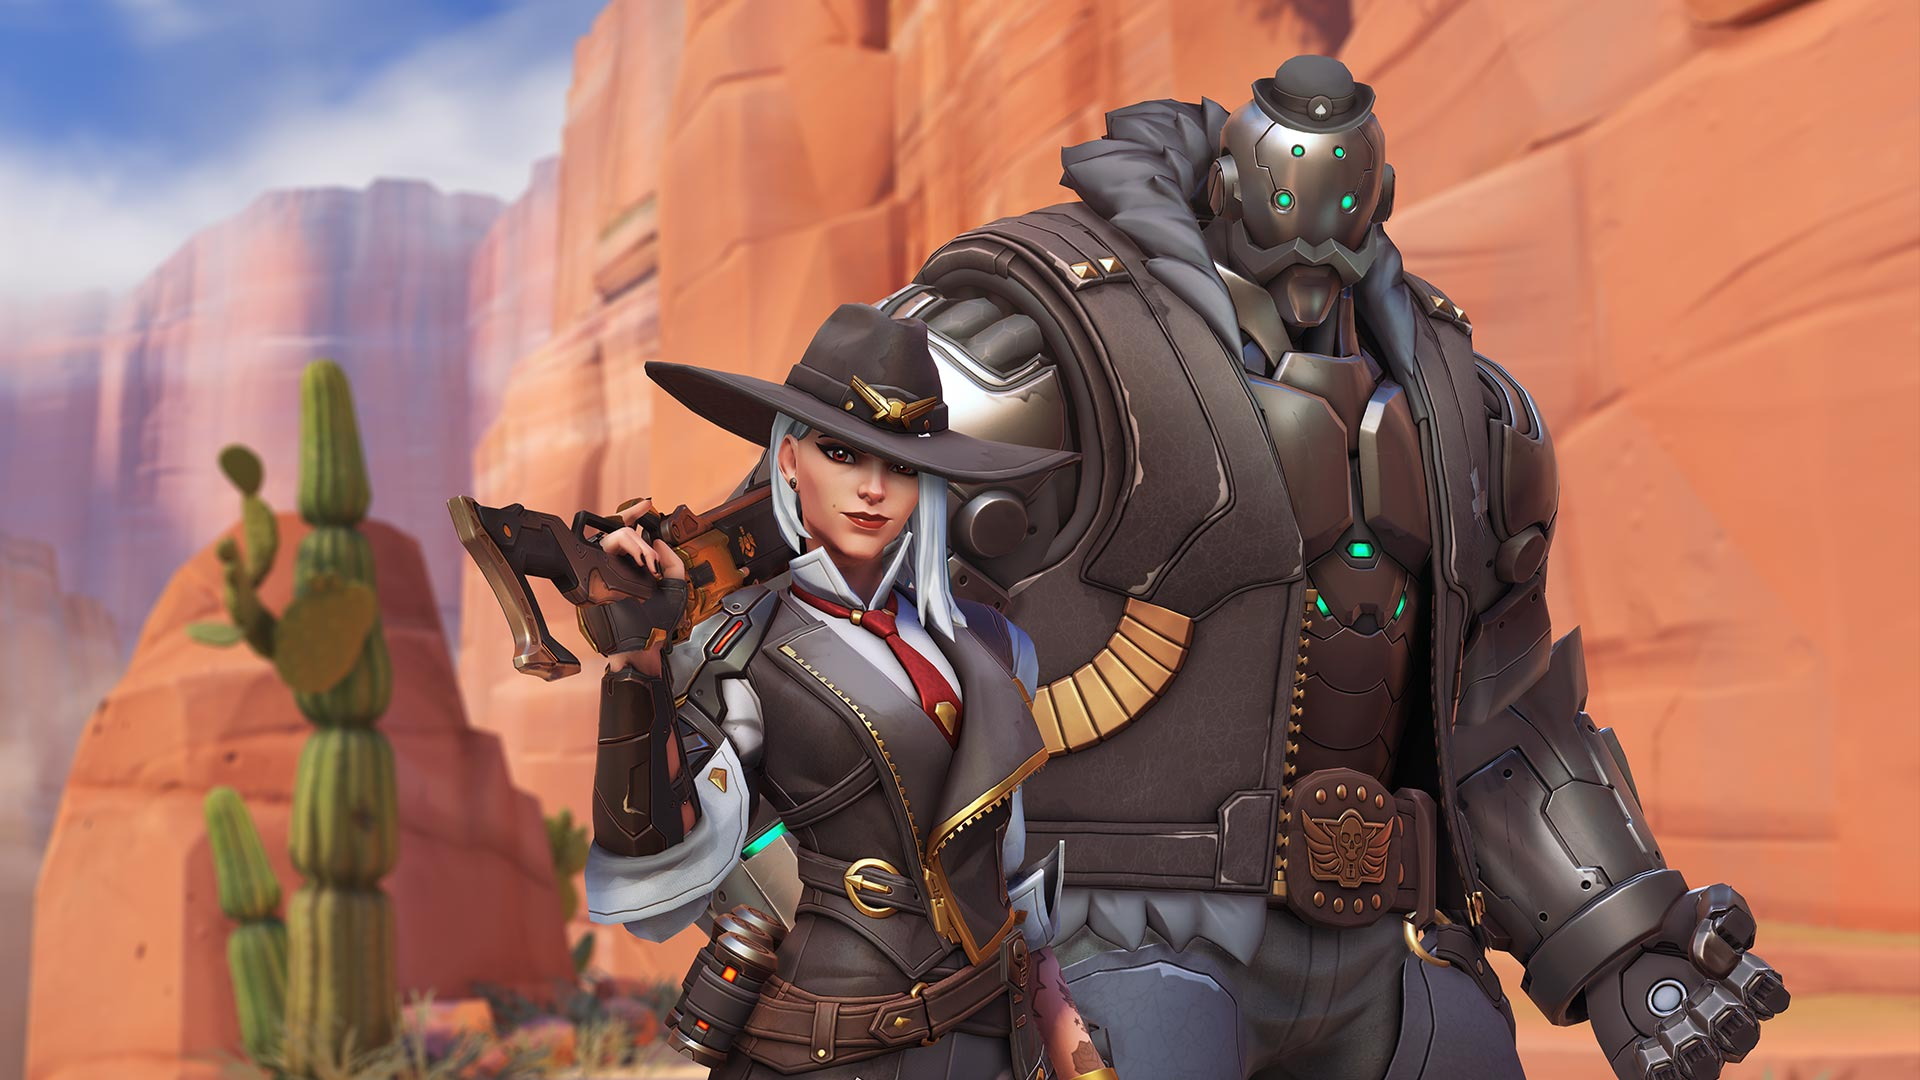 Blizzard reveals skins and concept art for Ashe, Overwatch's new hero